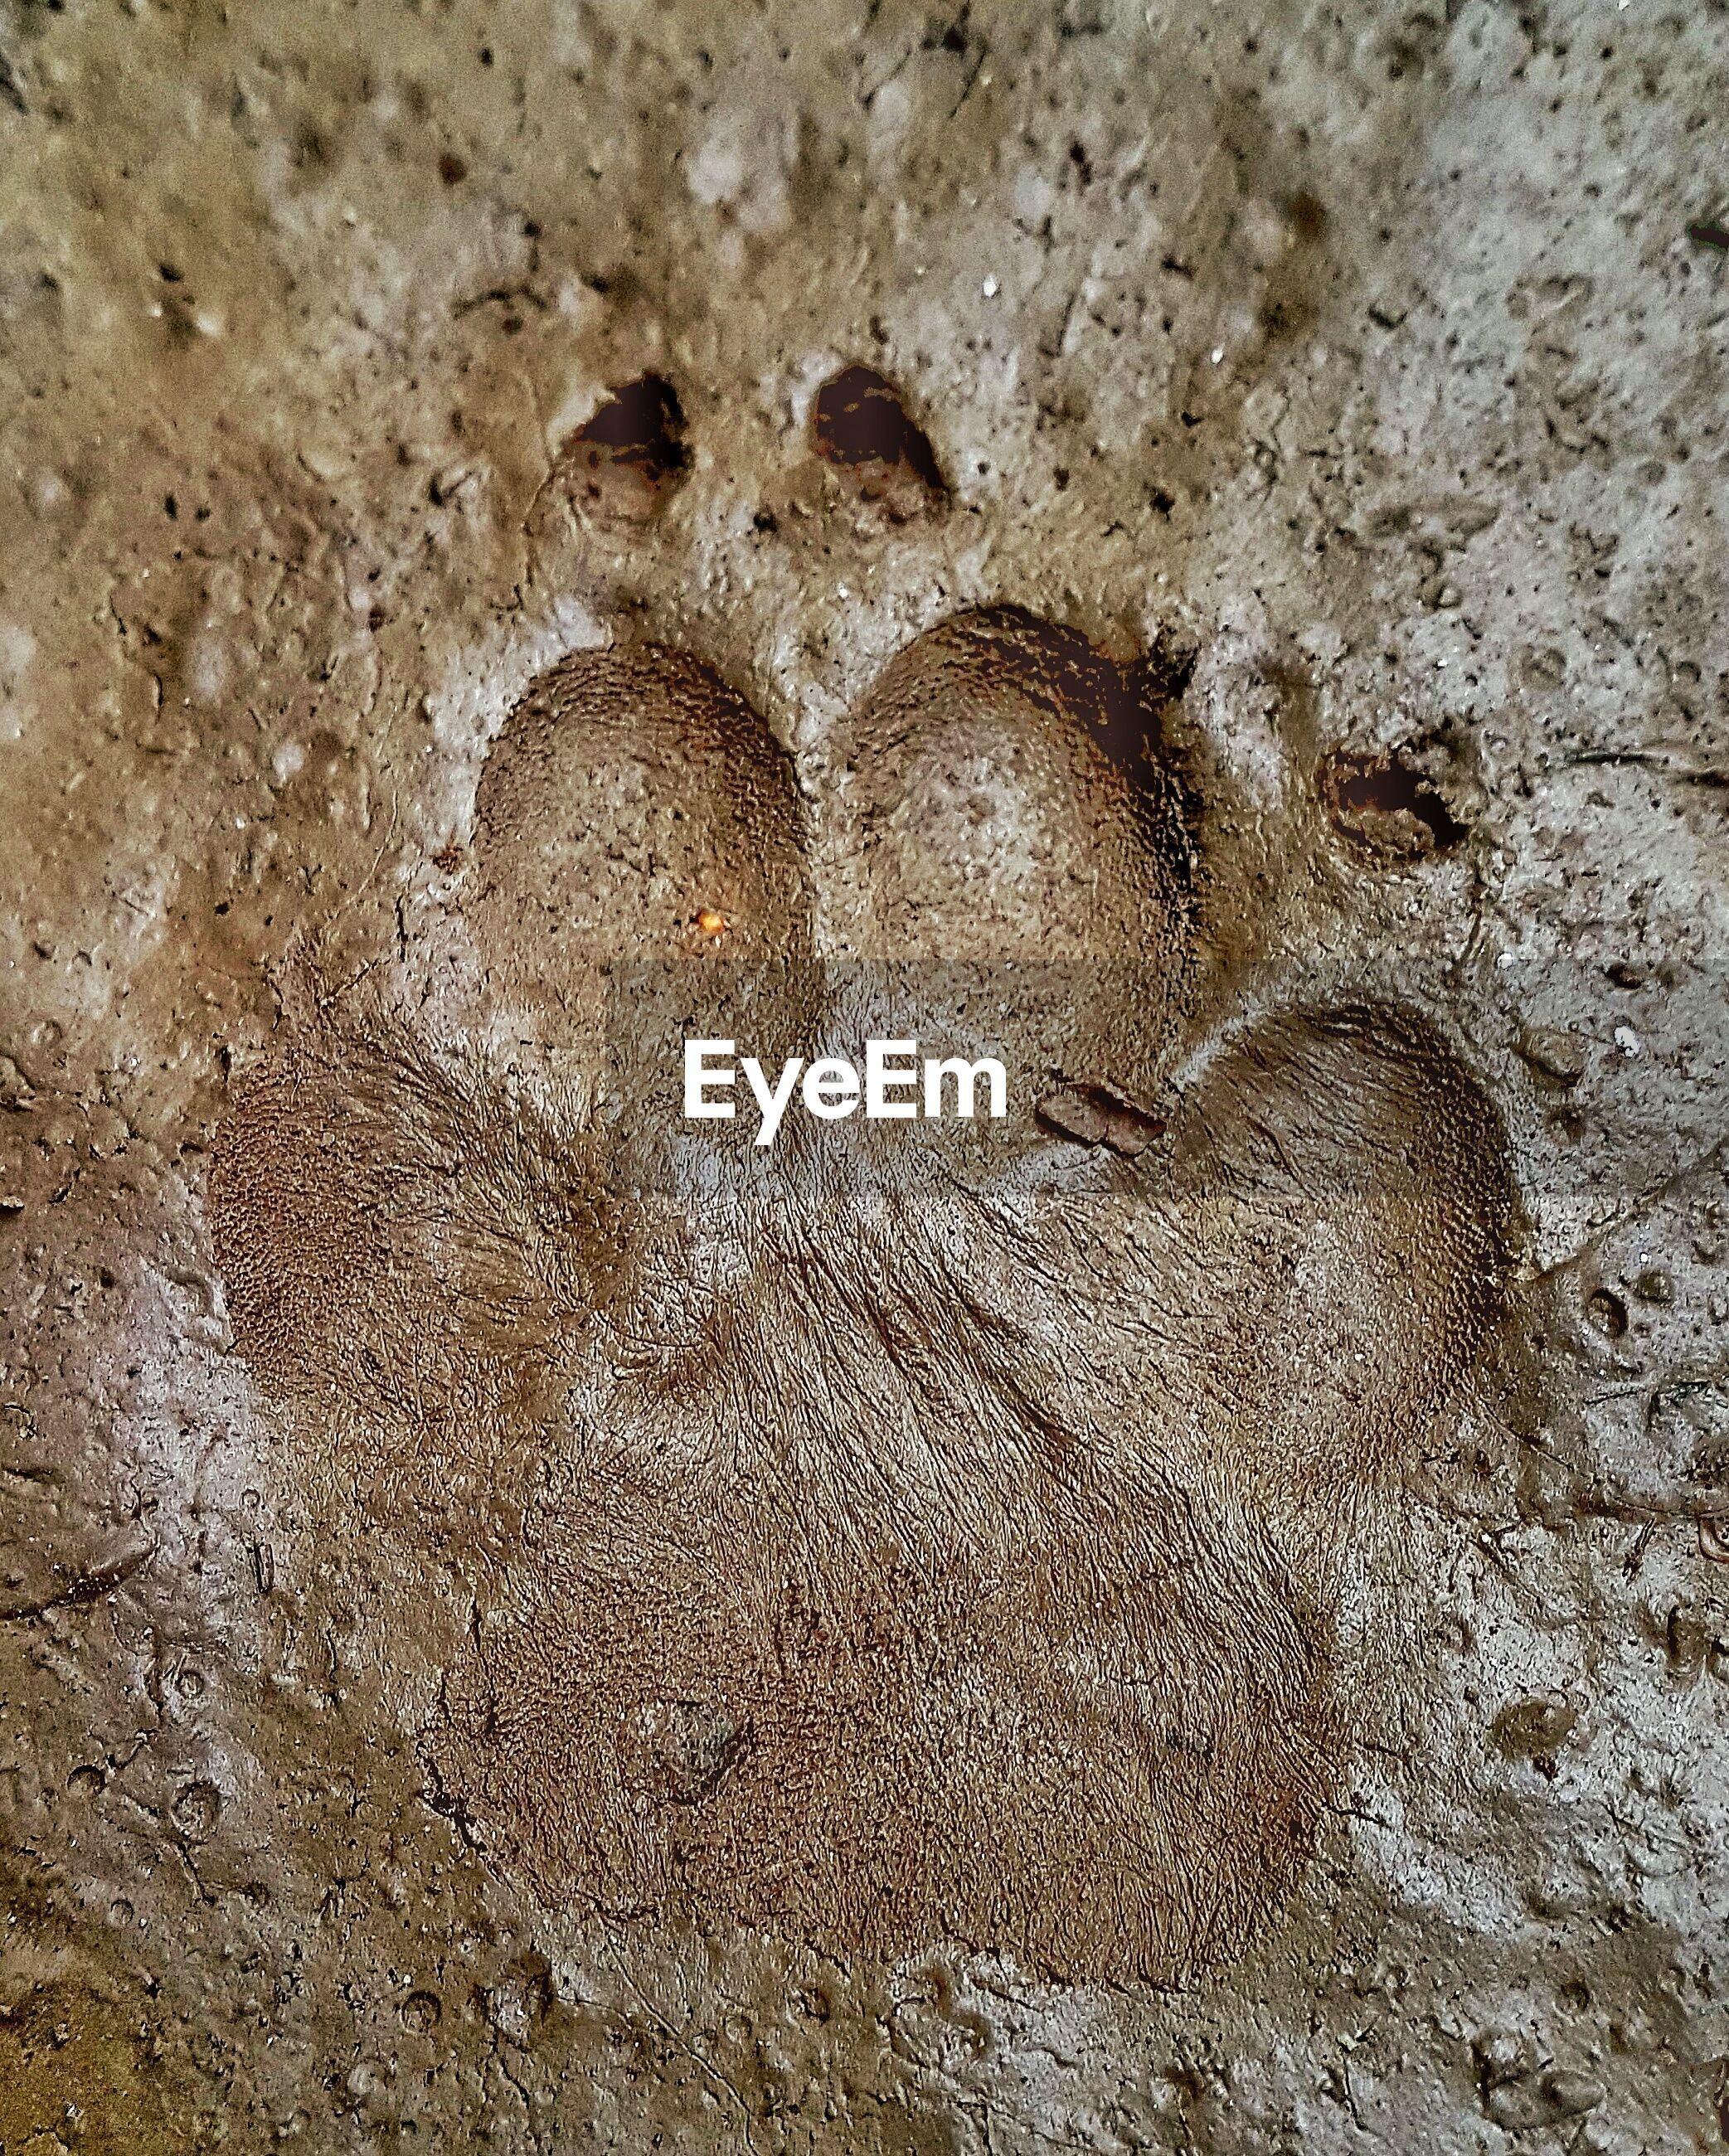 footprint, sand, paw print, no people, day, nature, outdoors, track - imprint, beach, close-up, bird, animal themes